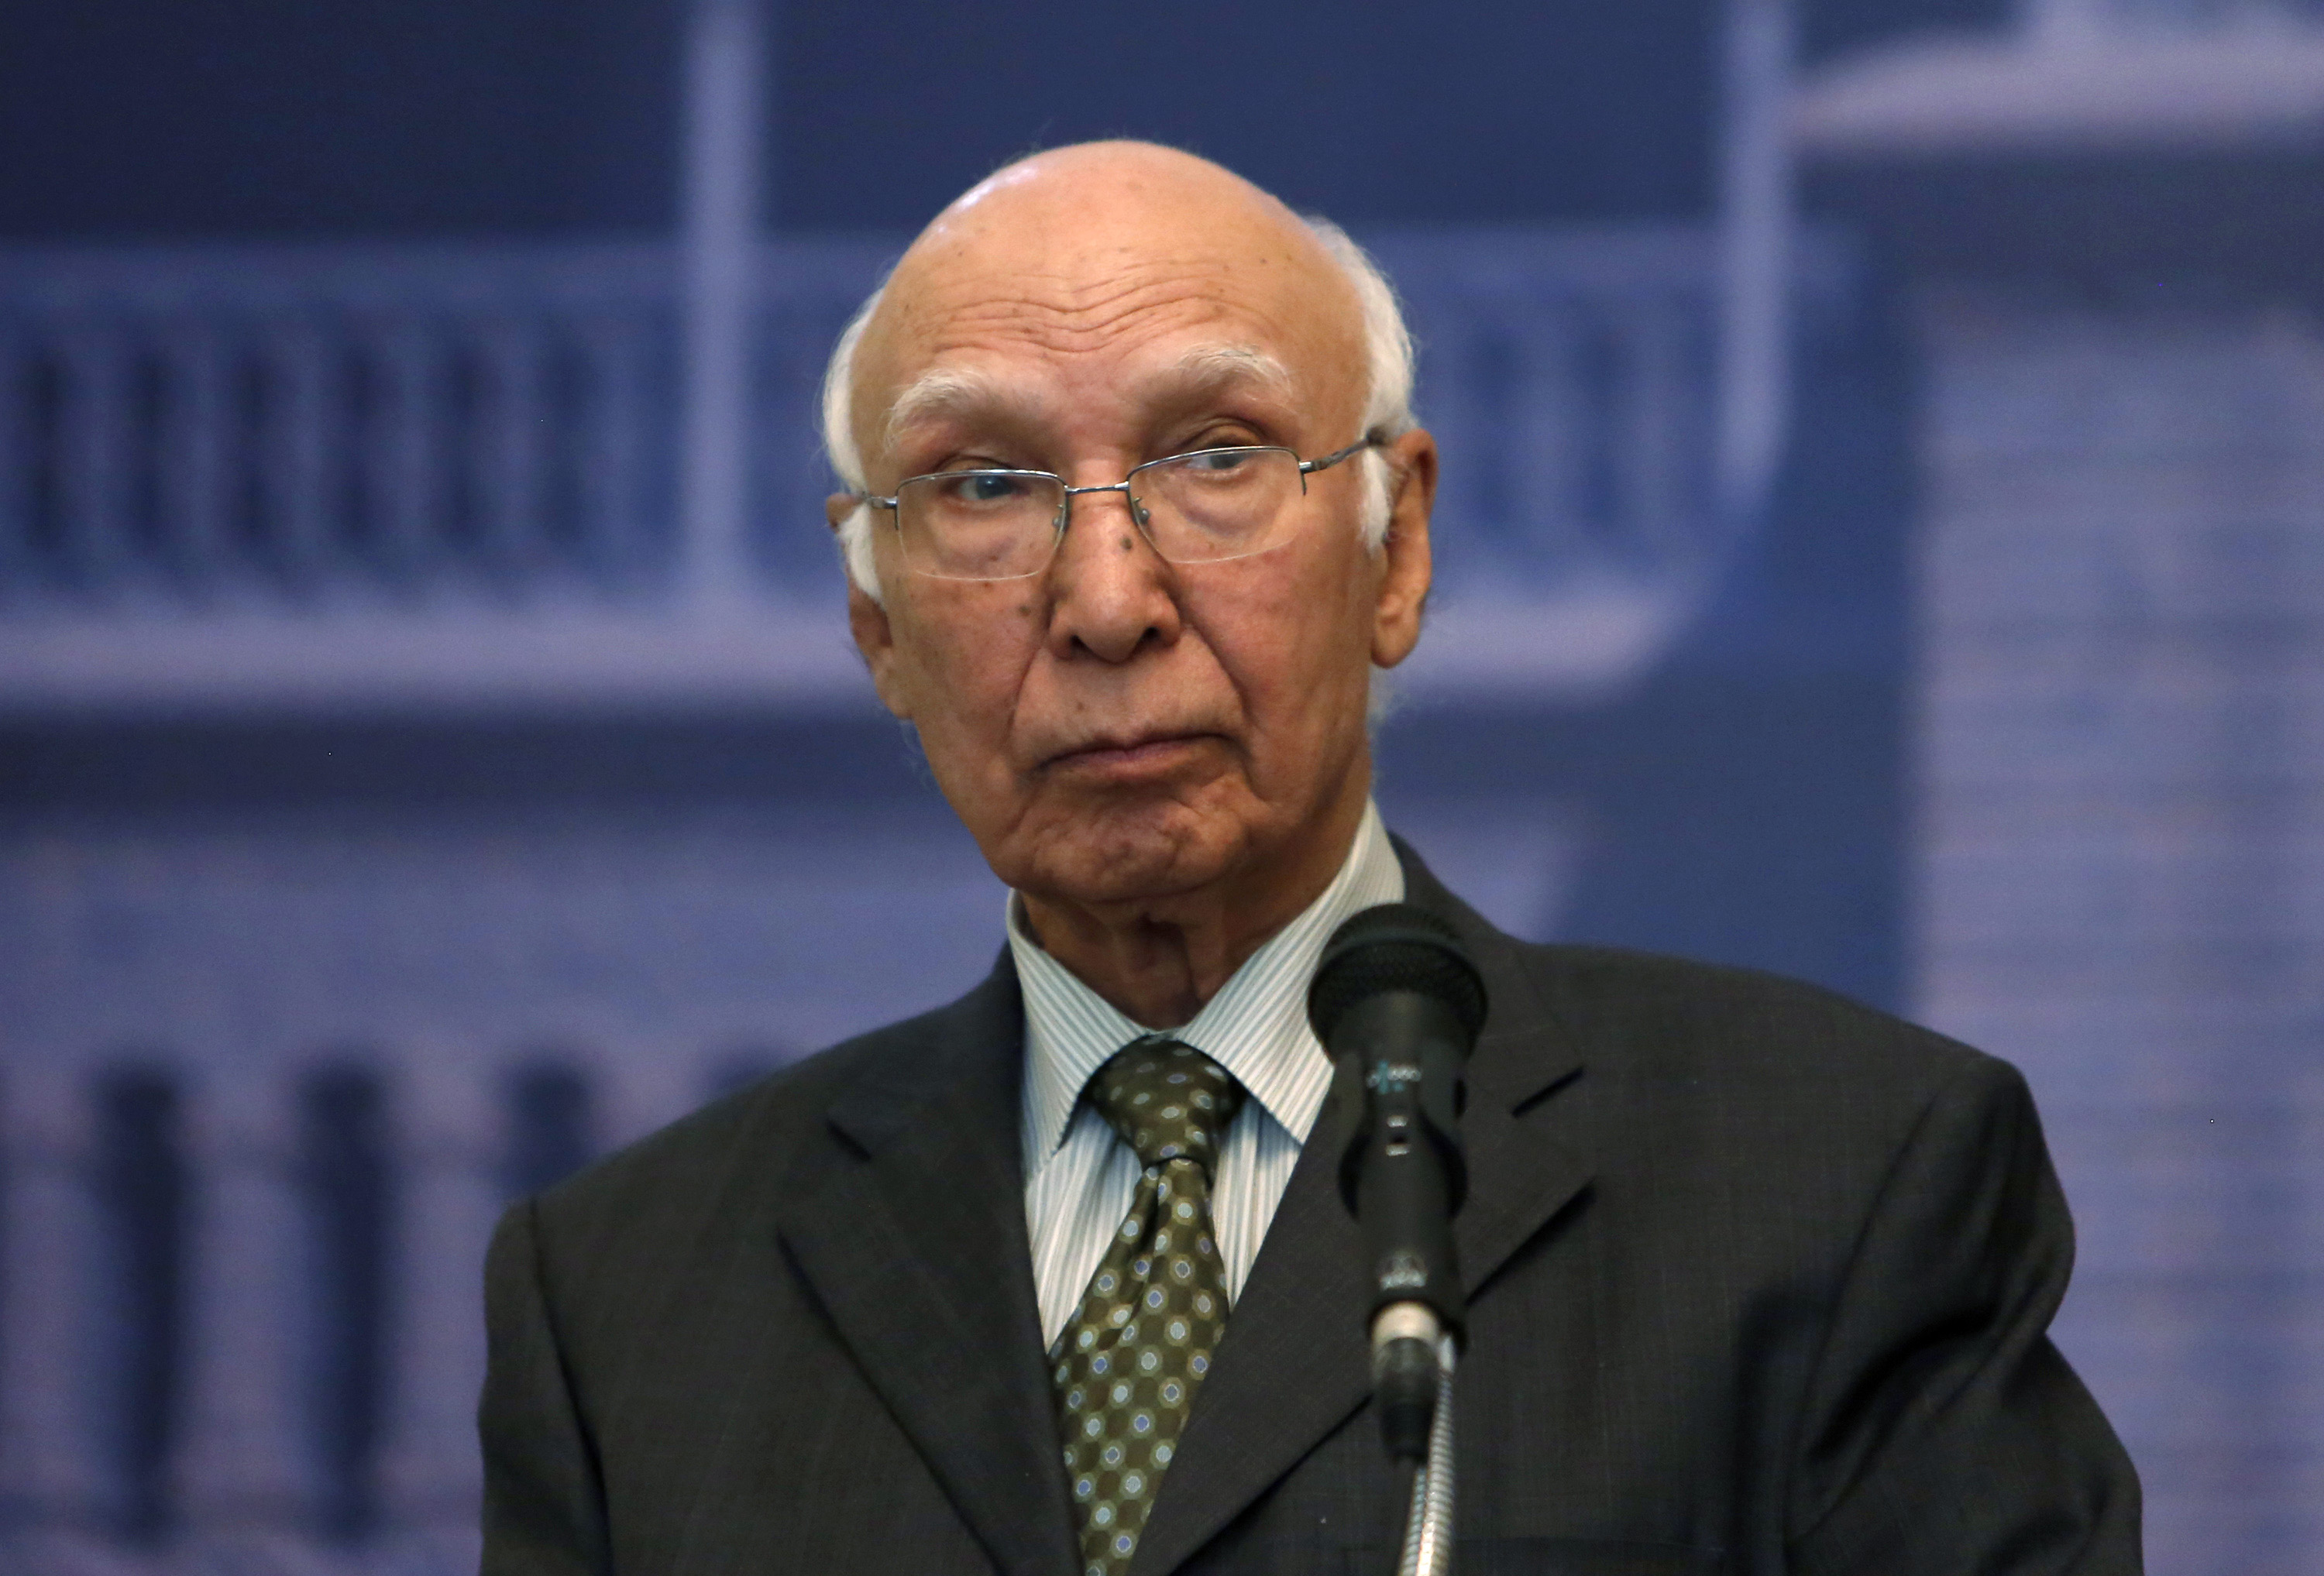 Sartaj Aziz, Pakistani Prime Minister Nawaz Sharif's adviser on foreign affairs, speaks during a news conference in Kabul on July 21, 2013